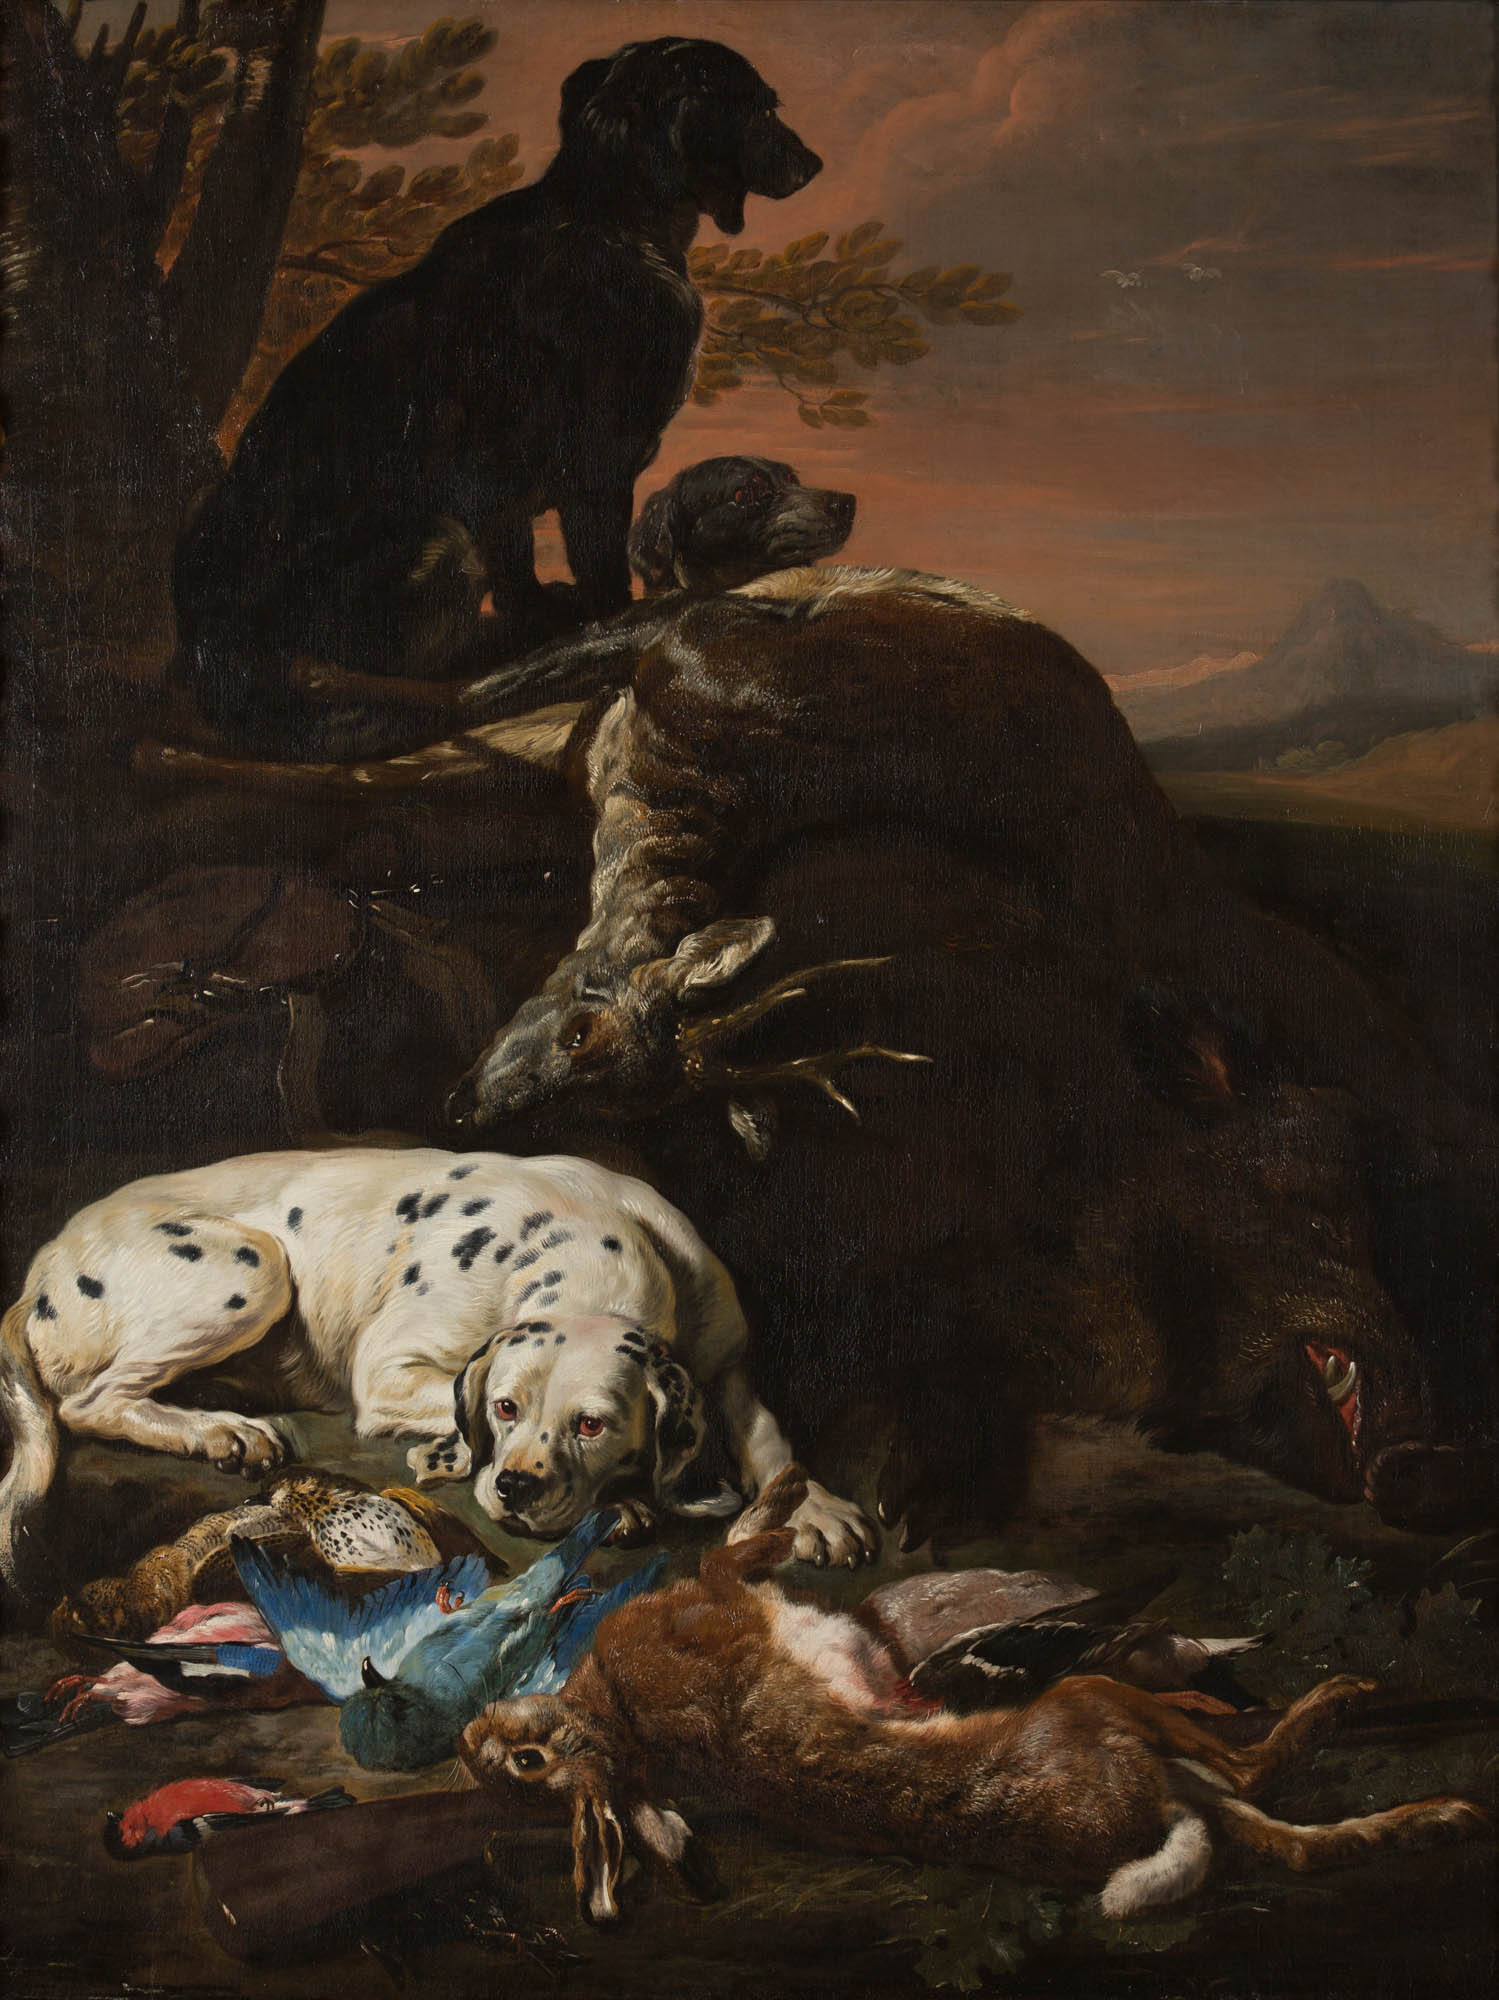 Hounds with a Dead Stag, a Hare and other Game, in a Landscape, by David de Coninck (c1636-c1699).